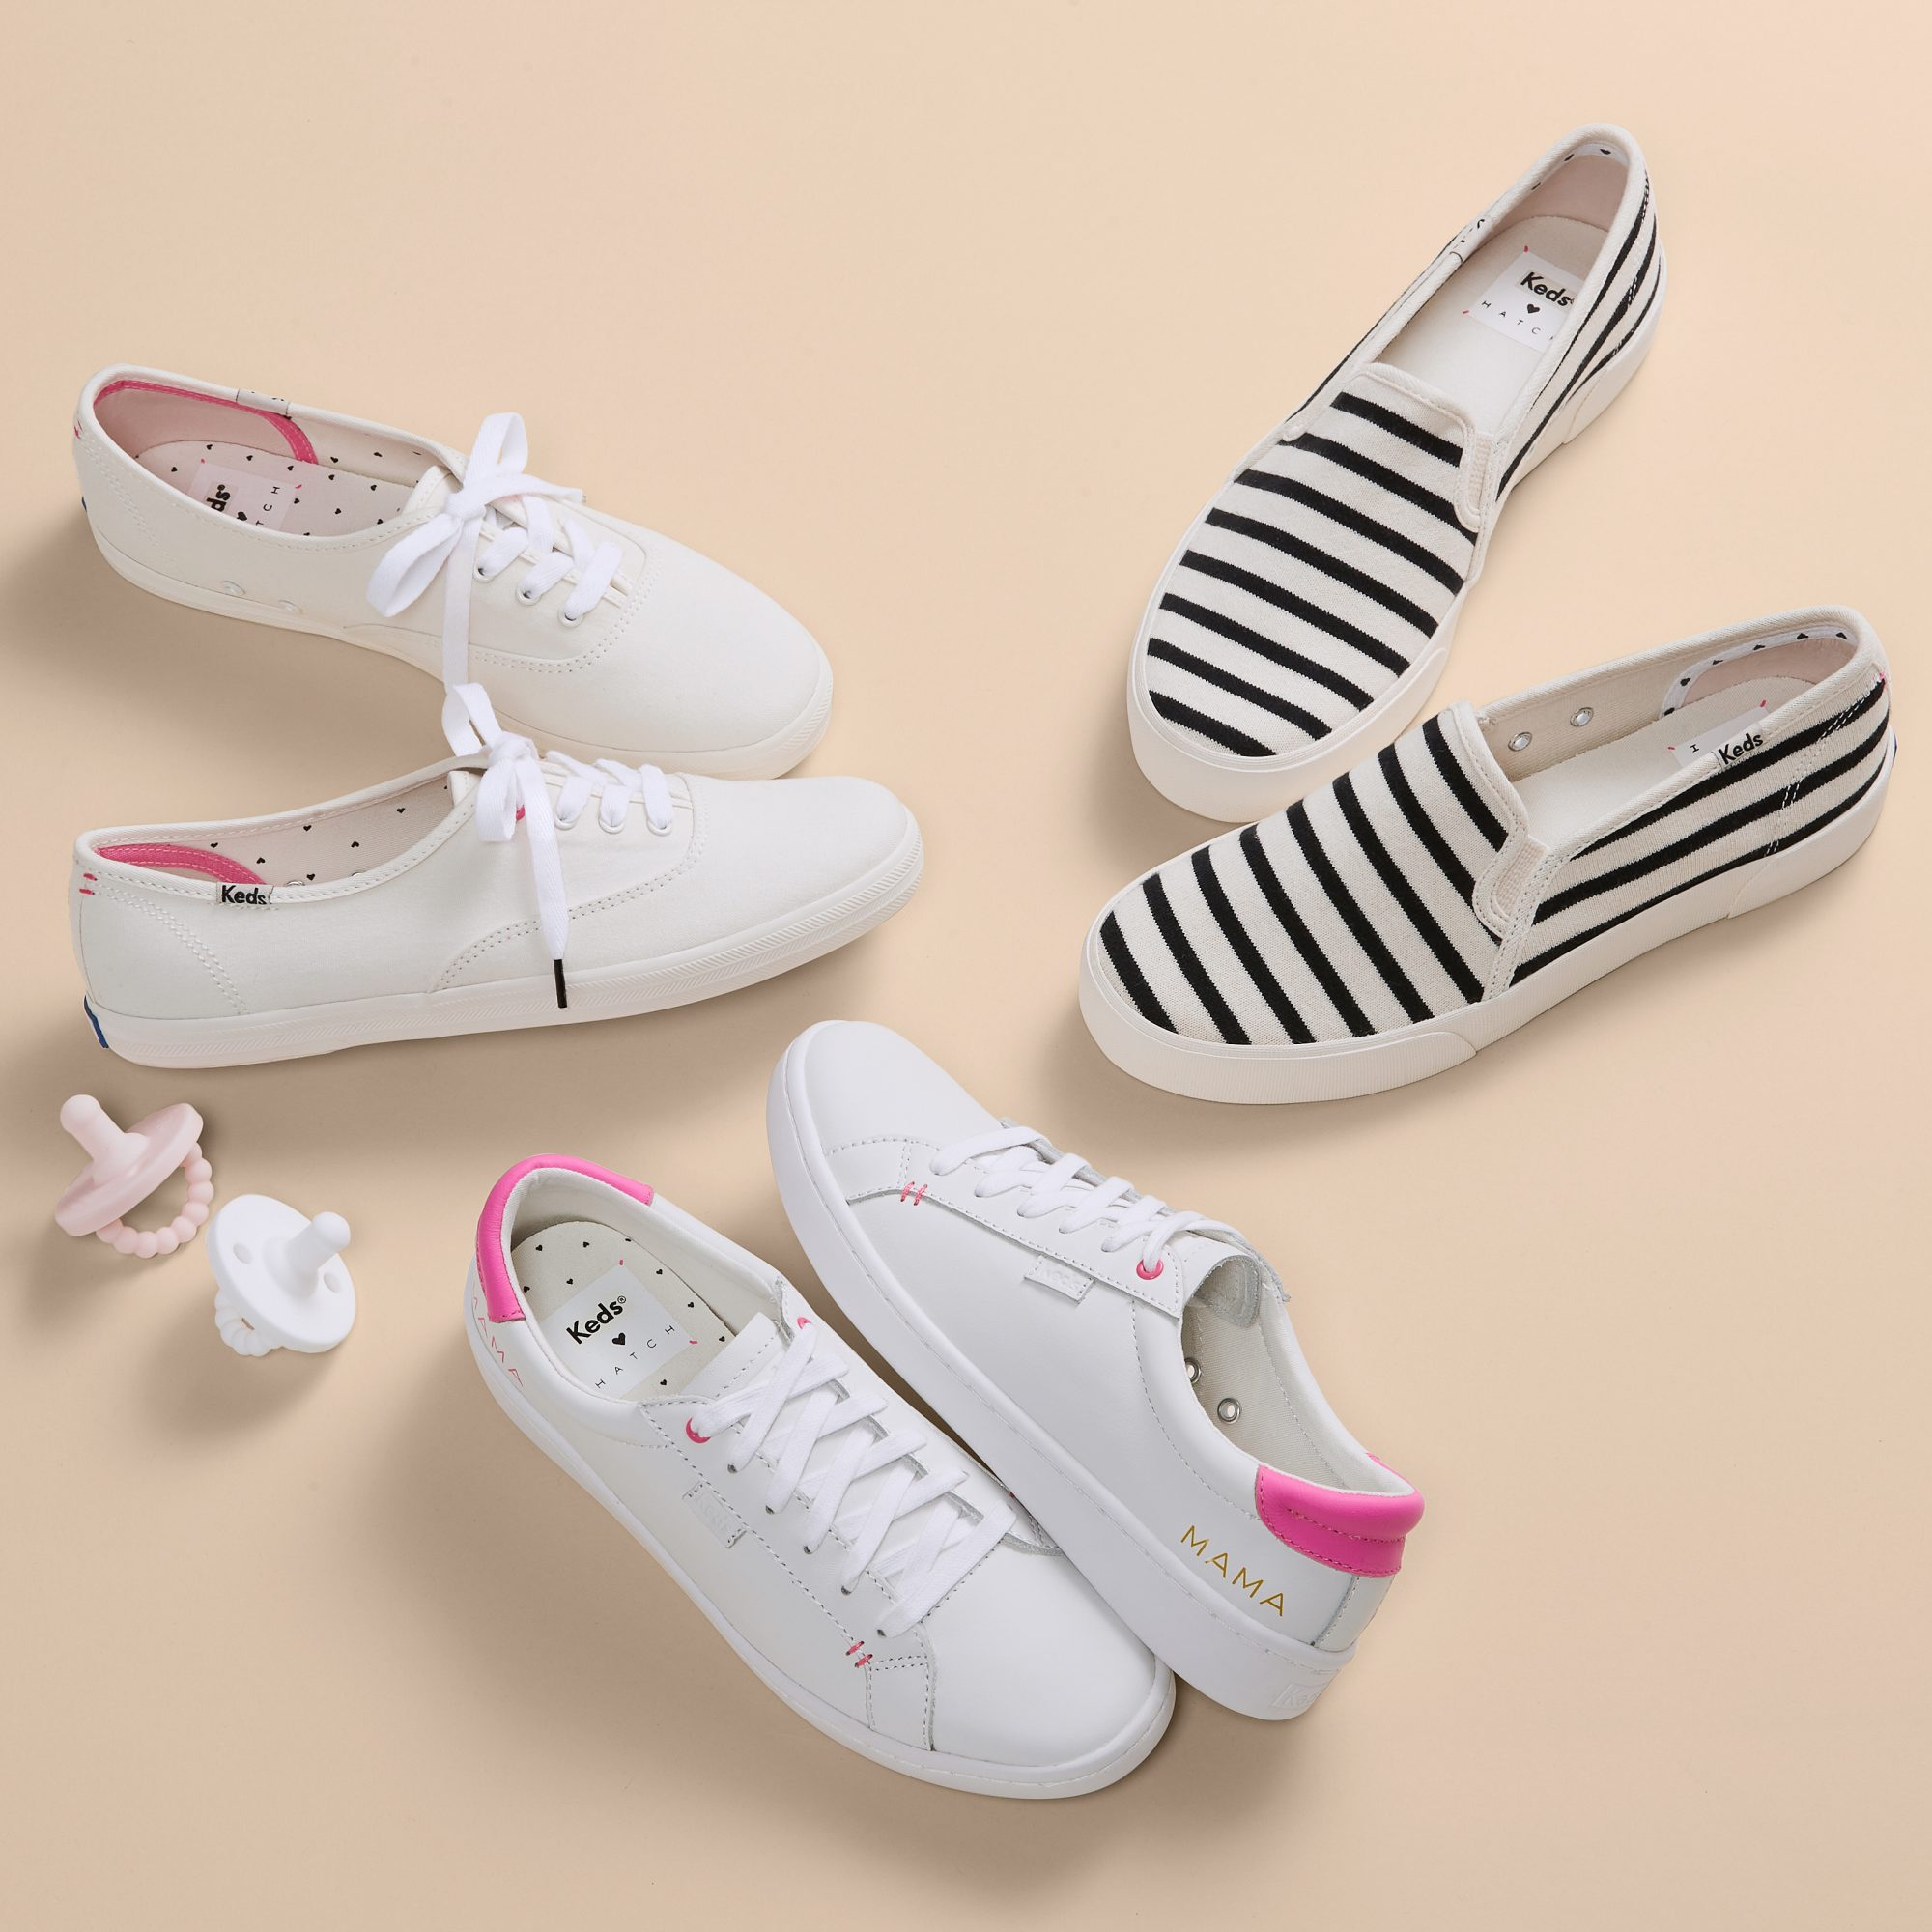 """For most moms, the combo of """"cute,"""" """"functional"""" and """"comfortable"""" can be something of a holy grail. Hatch (the maternity-and-beyond line loved by Meghan Markle and Natalie Portman) teamed up with Keds to make a Mother's Day collection of shoes that's all those things and more - with details so sweet, they're irresistible even to those not chasing after kiddos.                             Buy It!Hatch x Keds, starting at $64.95; hatchcollection.com"""